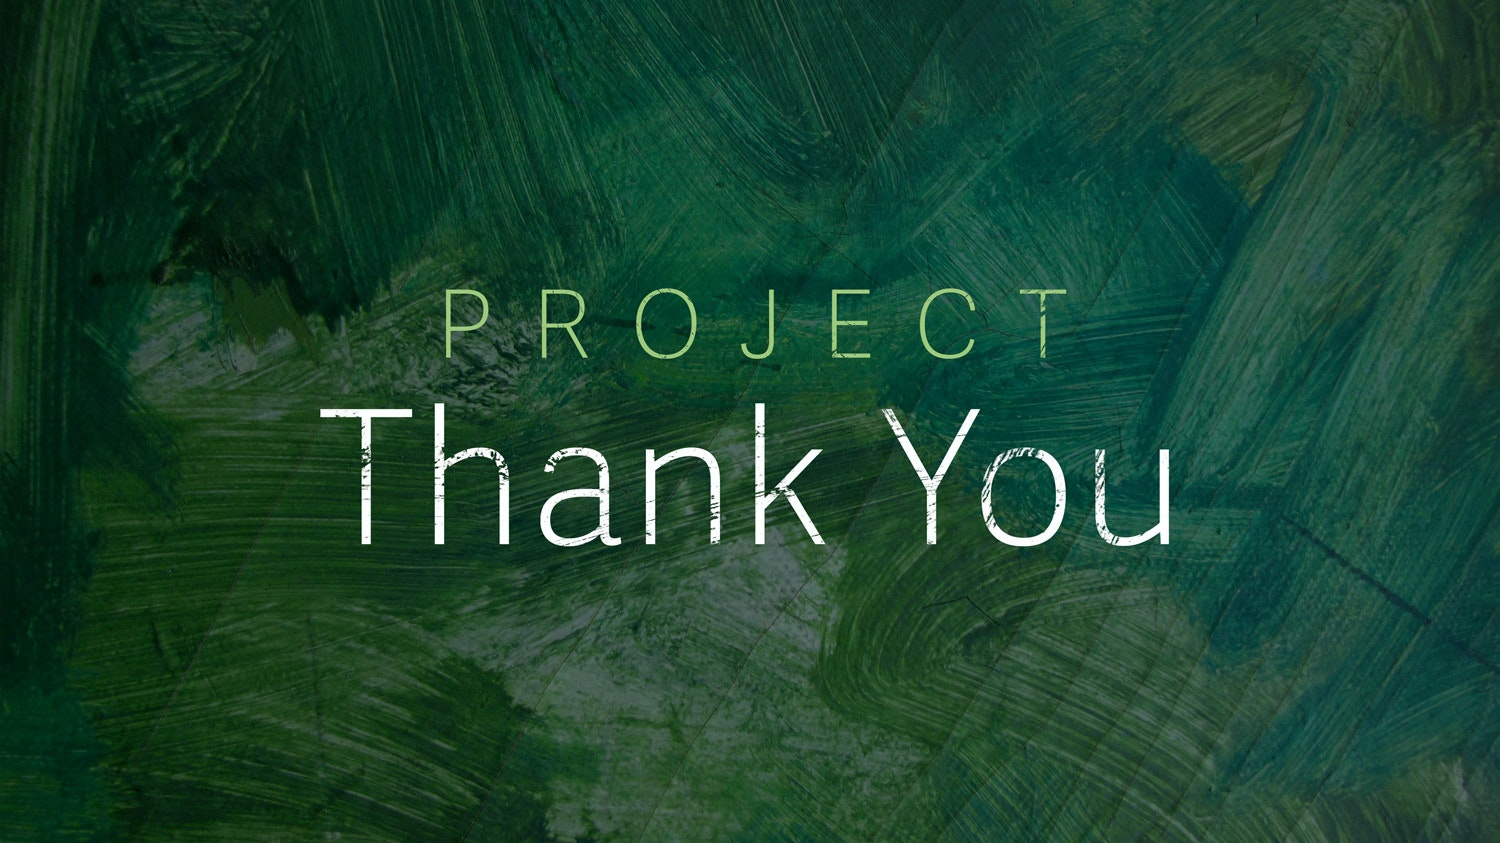 Project thank you